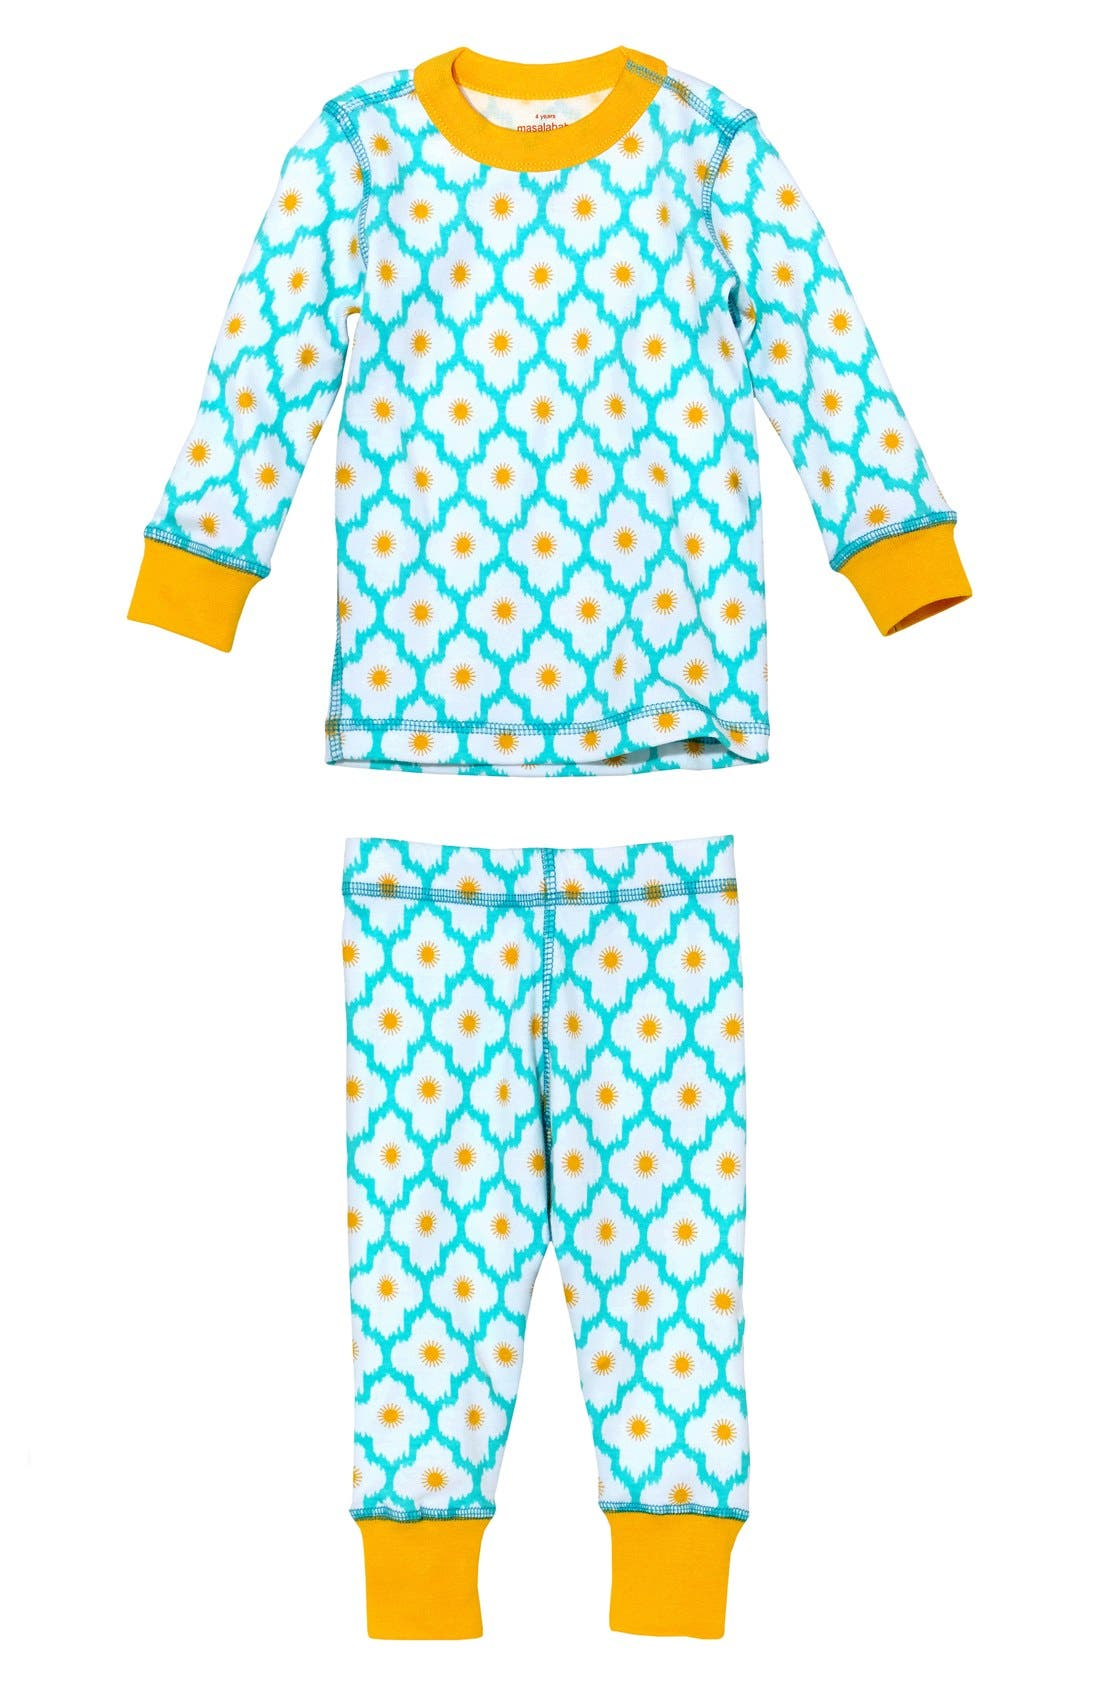 Shop for baby girl pajamas at learn-islam.gq Explore our selection of baby girl sleepers, footed pajamas, baby girl 2 piece pajamas & more.